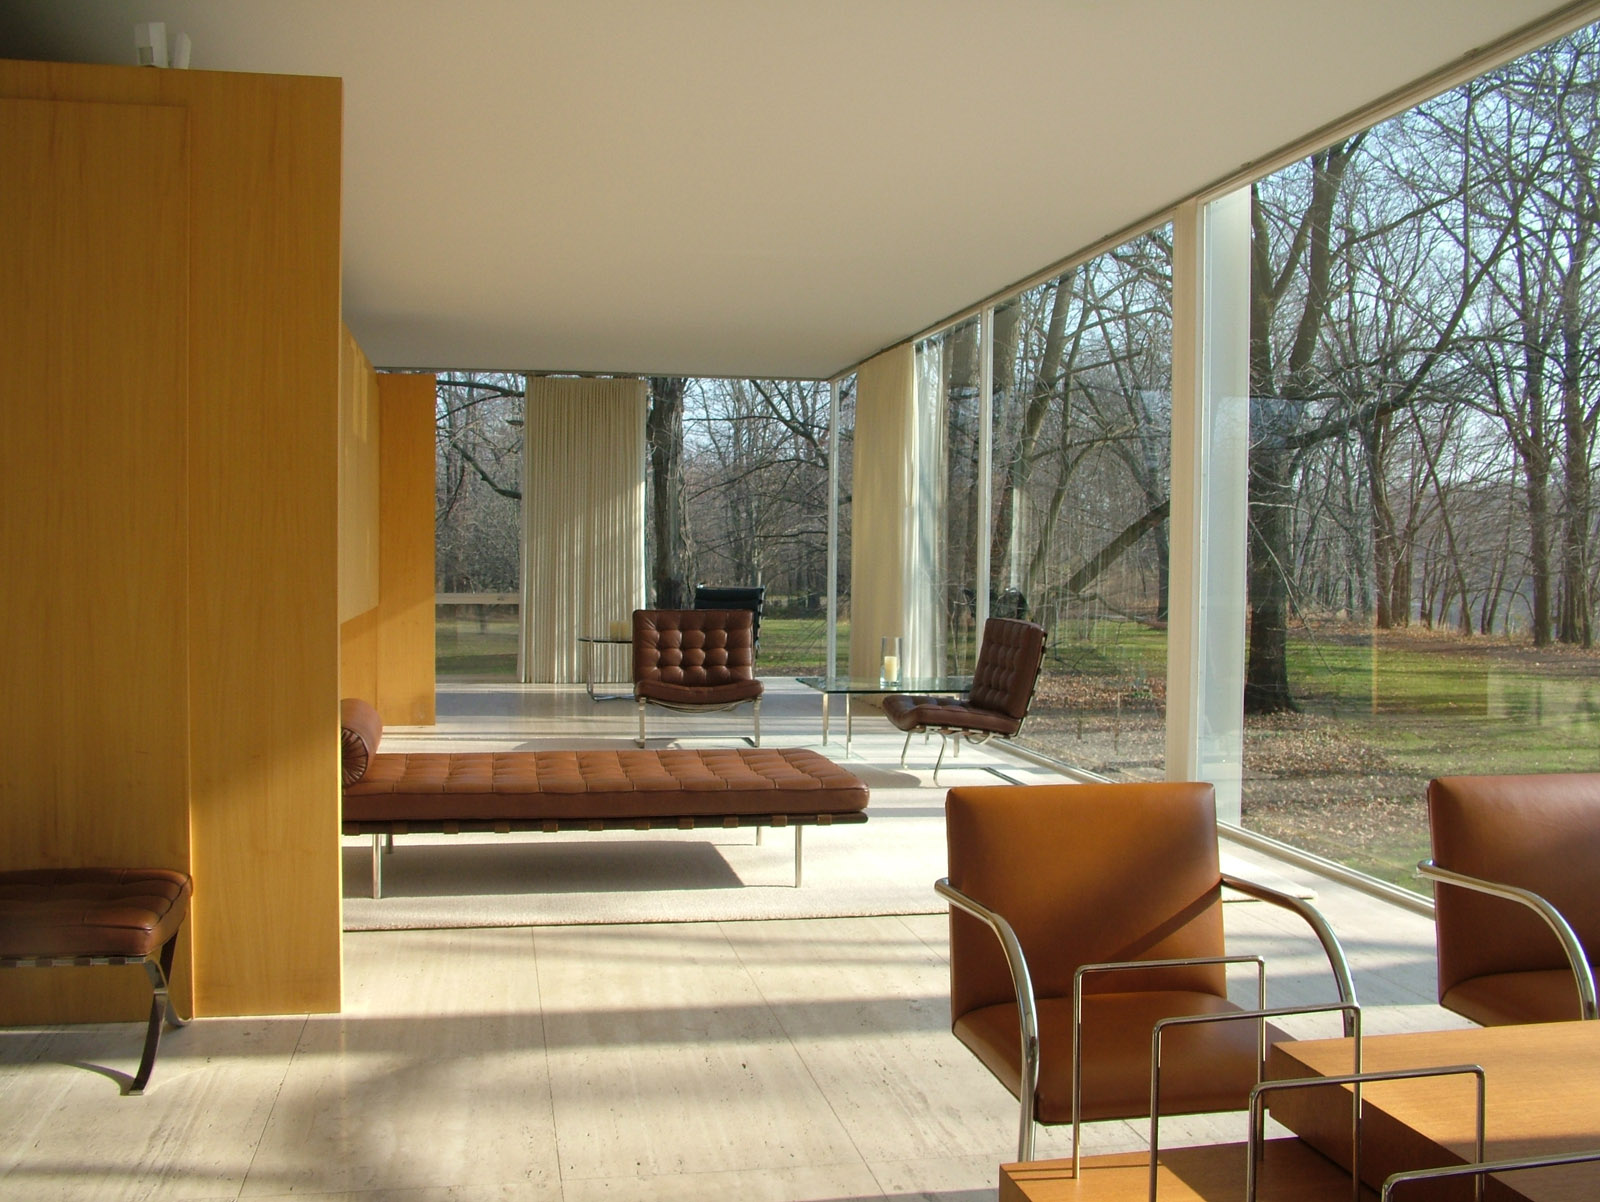 Furniture Design by Mies van der Rohe